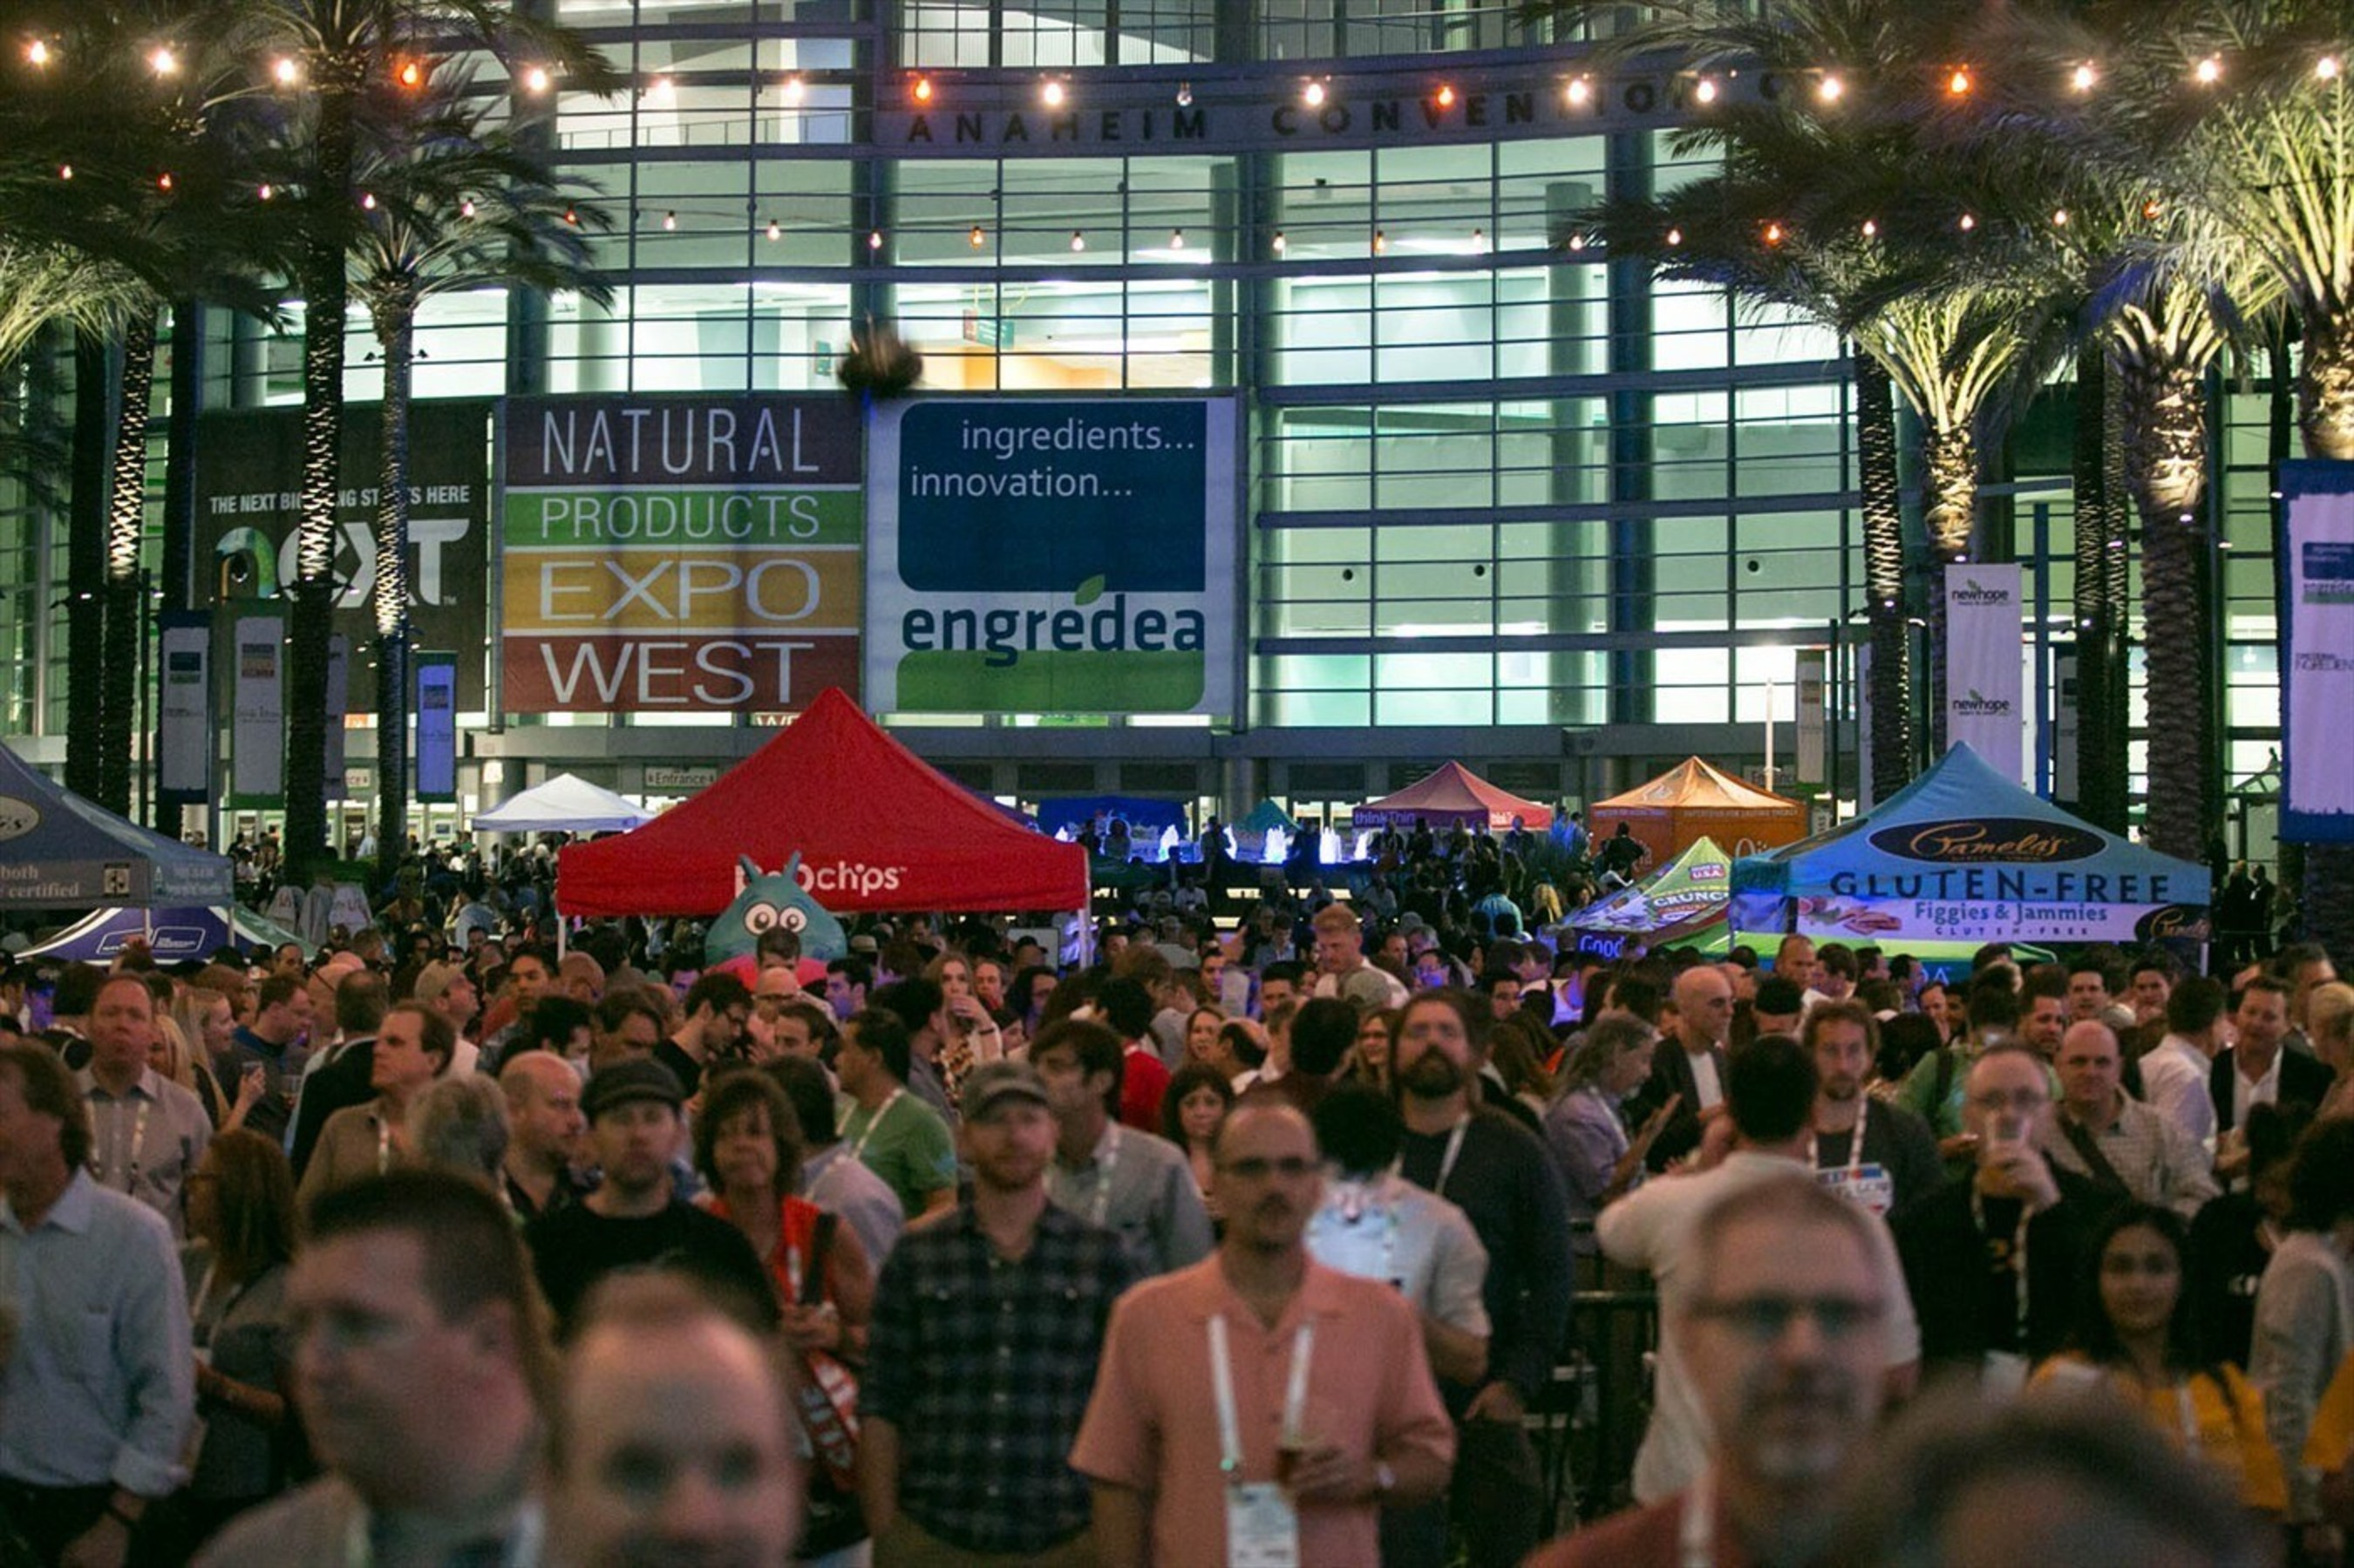 Natural Products Expo West/Engredea Shatters Attendance Record, Grows by 7.2 Percent to Over 71,000